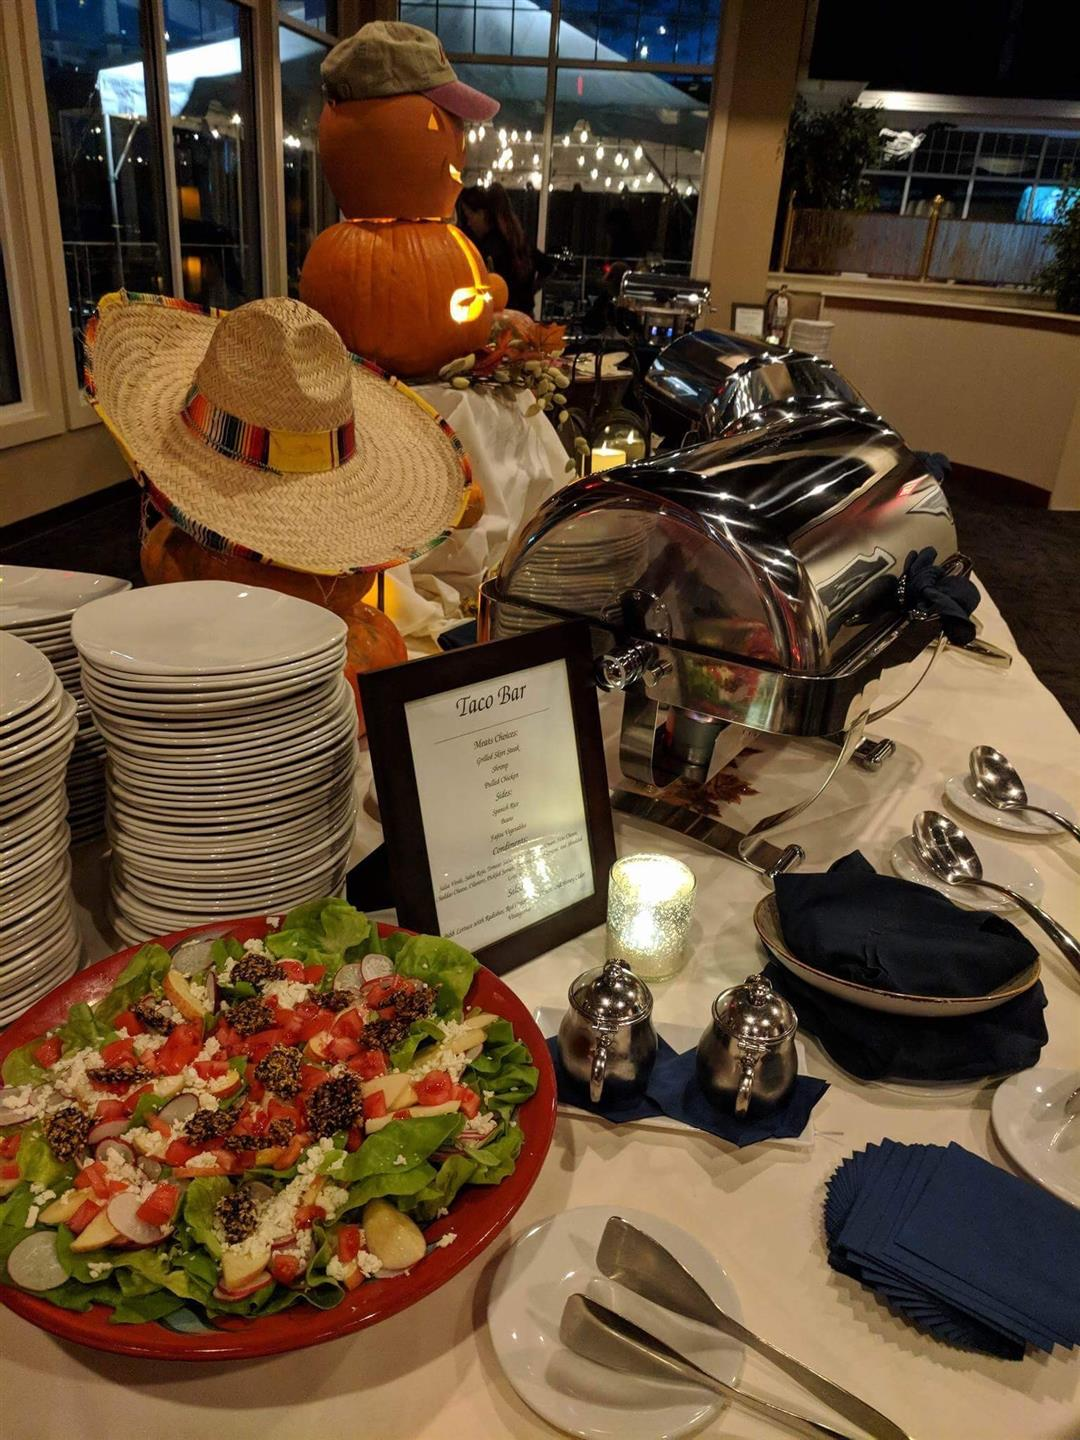 Decorated Buffet Table  with blue napkins, utensils, plates, and a salad